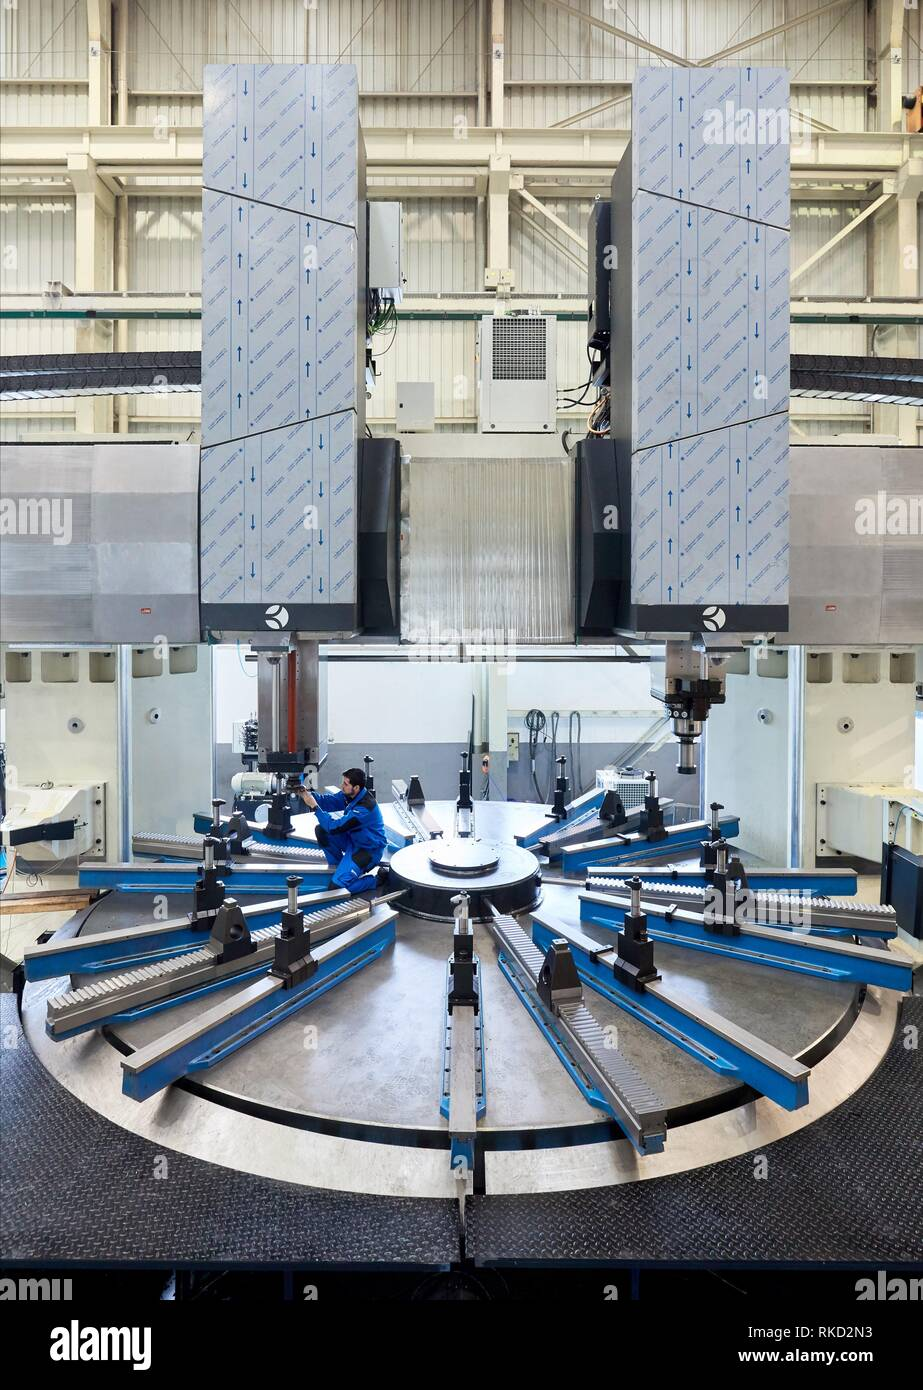 Vertical lathe with two heads, Machining Center, CNC, Design, manufacture and installation of machine tools, Gipuzkoa, Basque Country, Spain, Europe - Stock Image